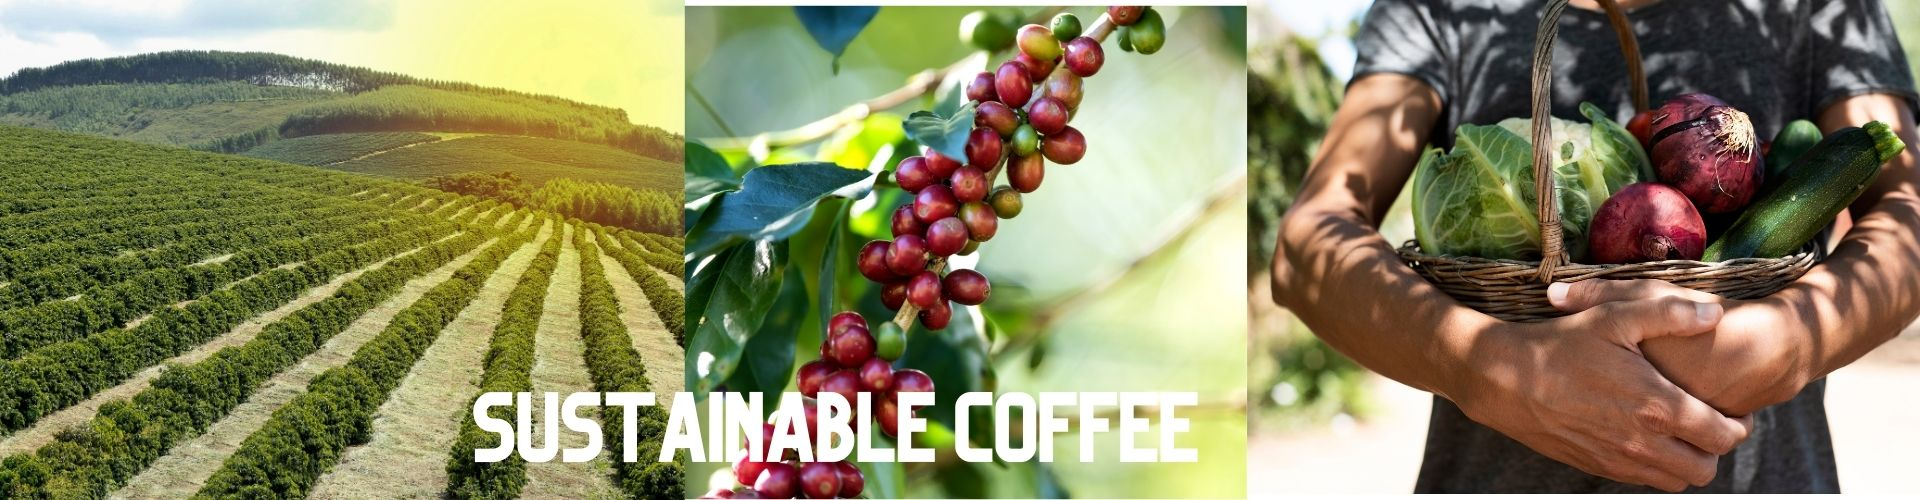 sustainable coffee banner image